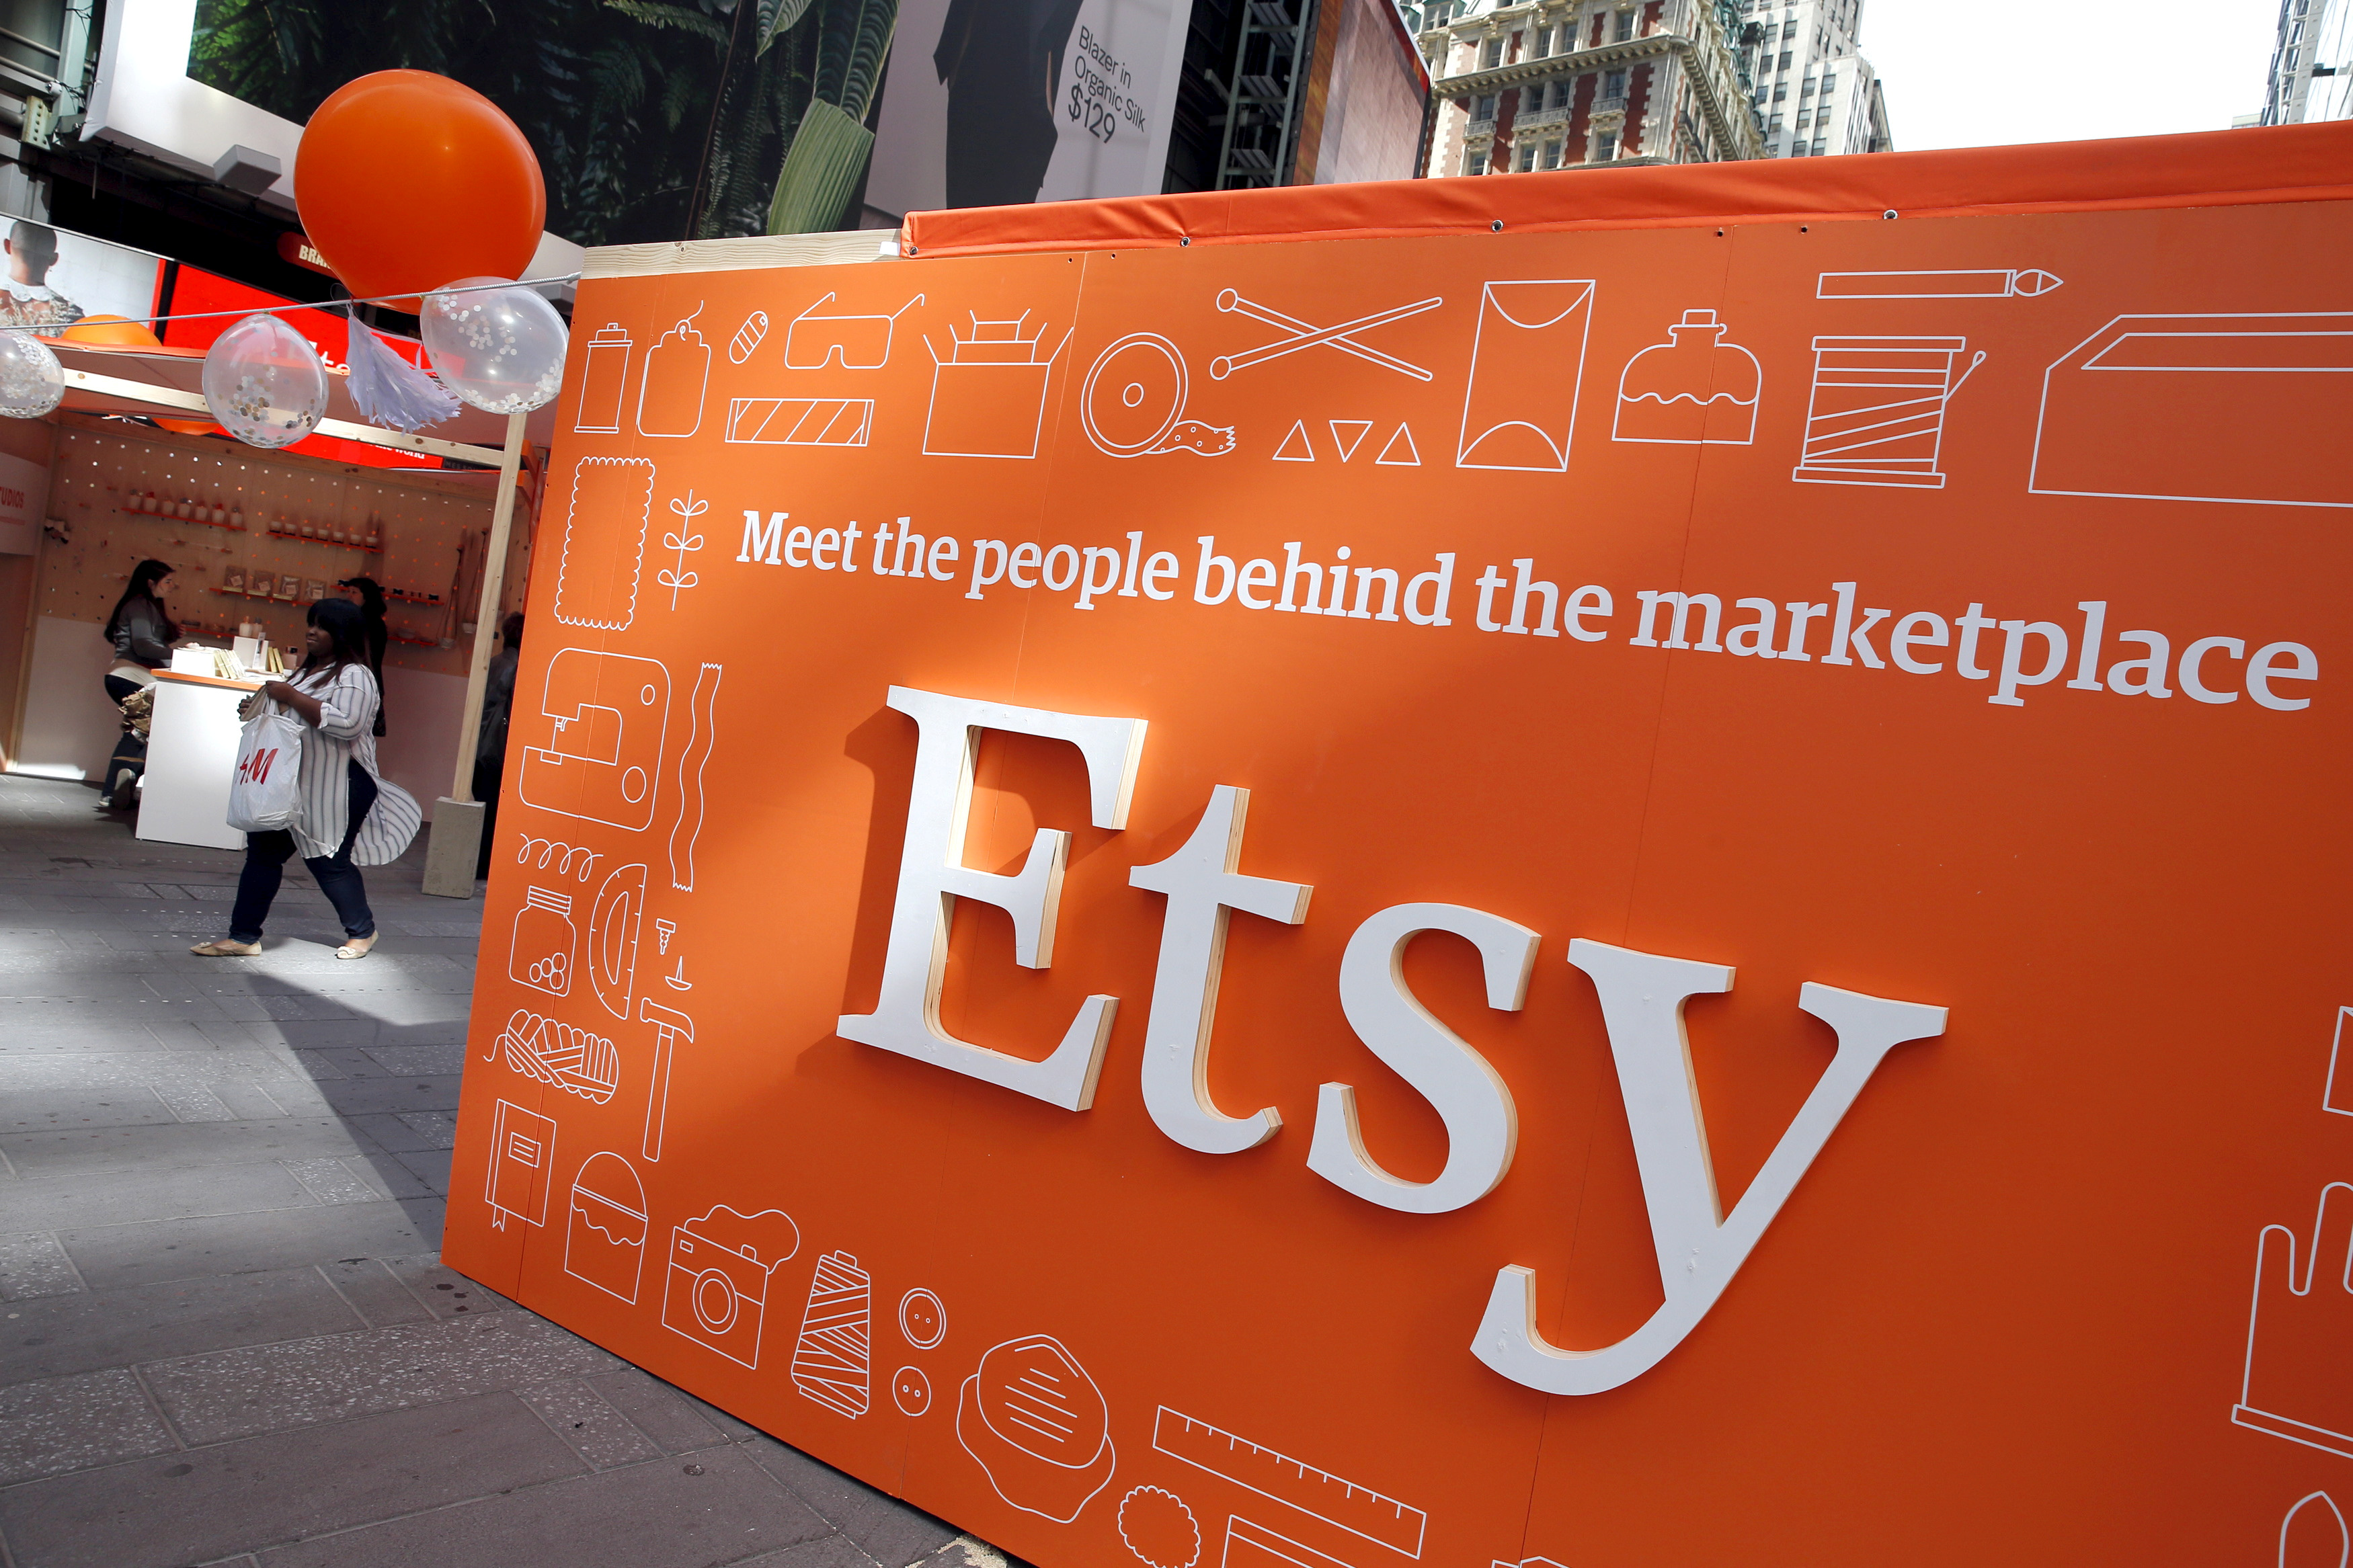 A sign advertising the online seller Etsy Inc. is seen outside the Nasdaq market site in Times Square following Etsy's IPO in New York